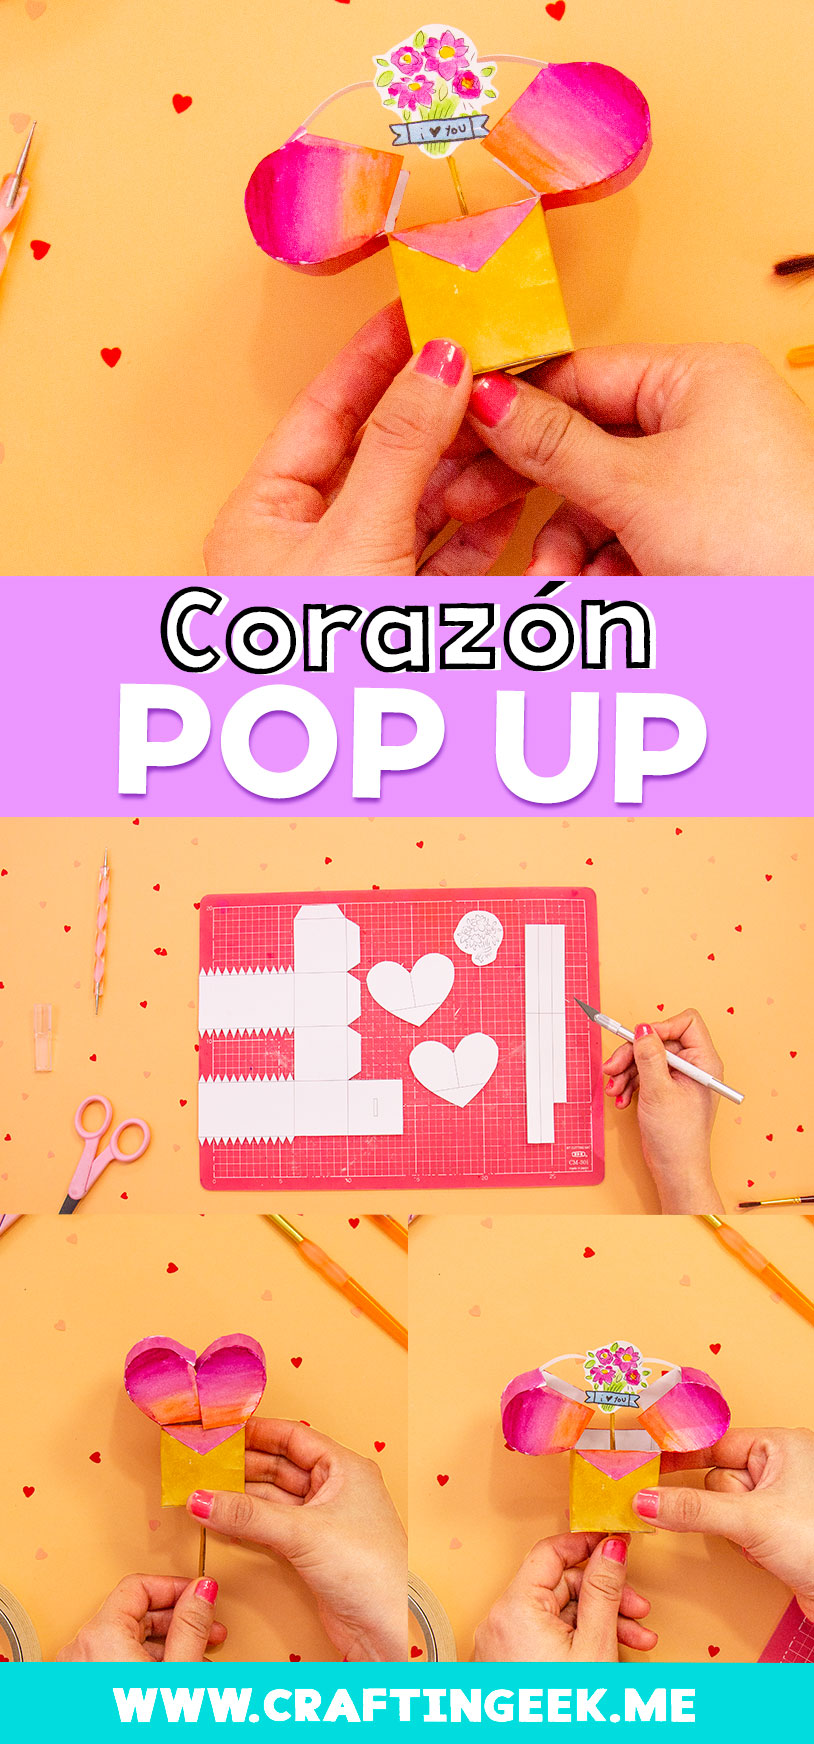 Regala a tu mamá un corazón Pop Up por el día de las madres ¡Le va encantar! | Heart Pop-up for Mothers Day and Valentine's Day